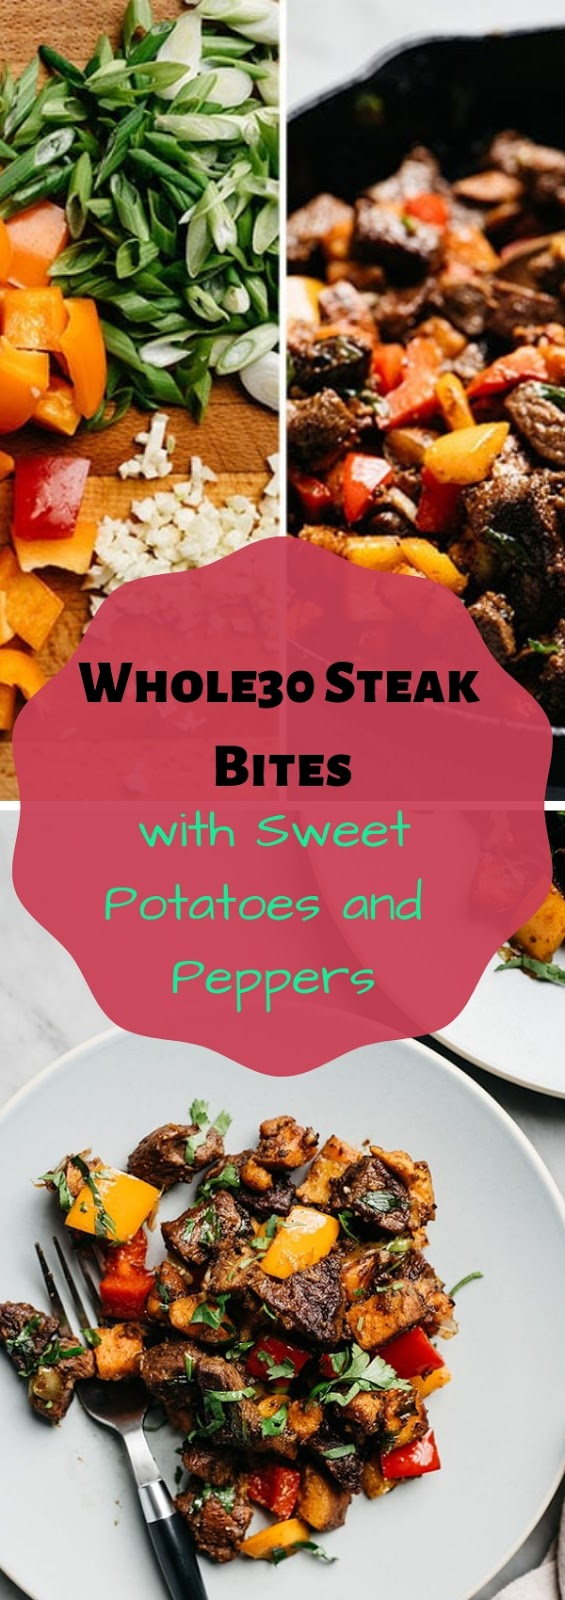 Whole30 Steak Bites with Sweet Potatoes and Peppers #american #dinner #maincourse #whole30 #steak #bites #sweet #potatoes #peppers